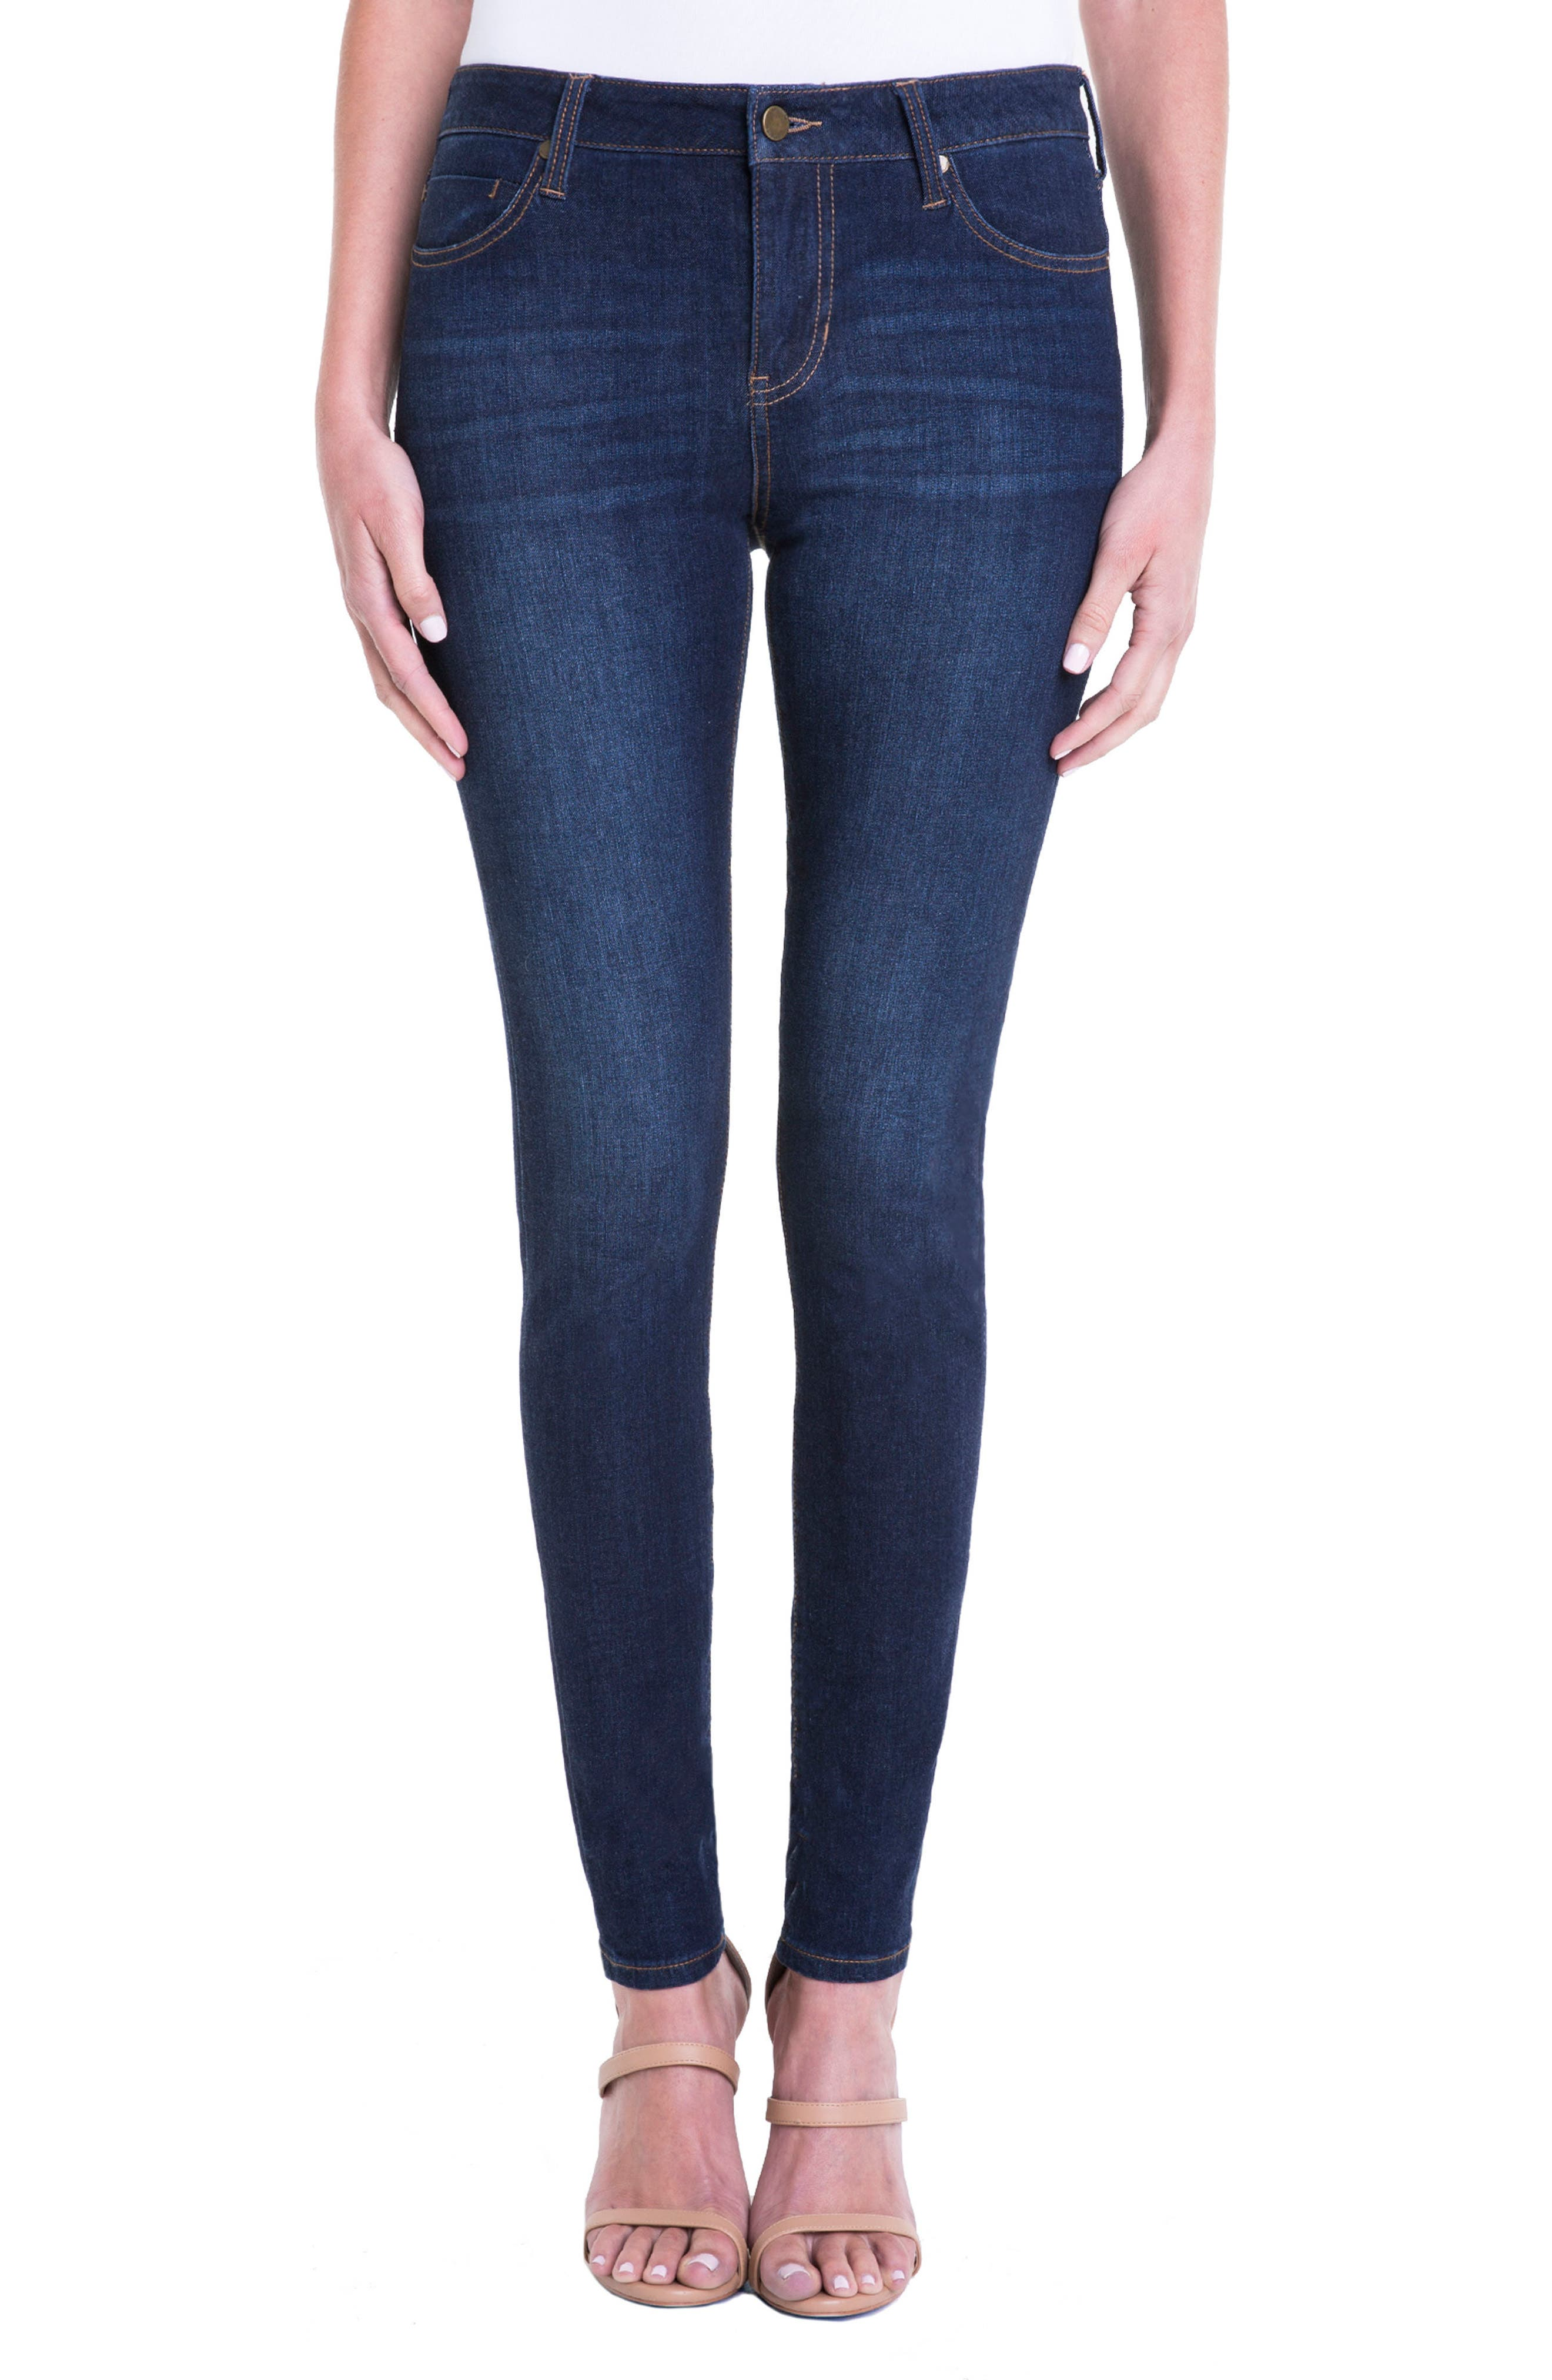 Abby Stretch Curvy Fit Skinny Jeans,                             Alternate thumbnail 2, color,                             401